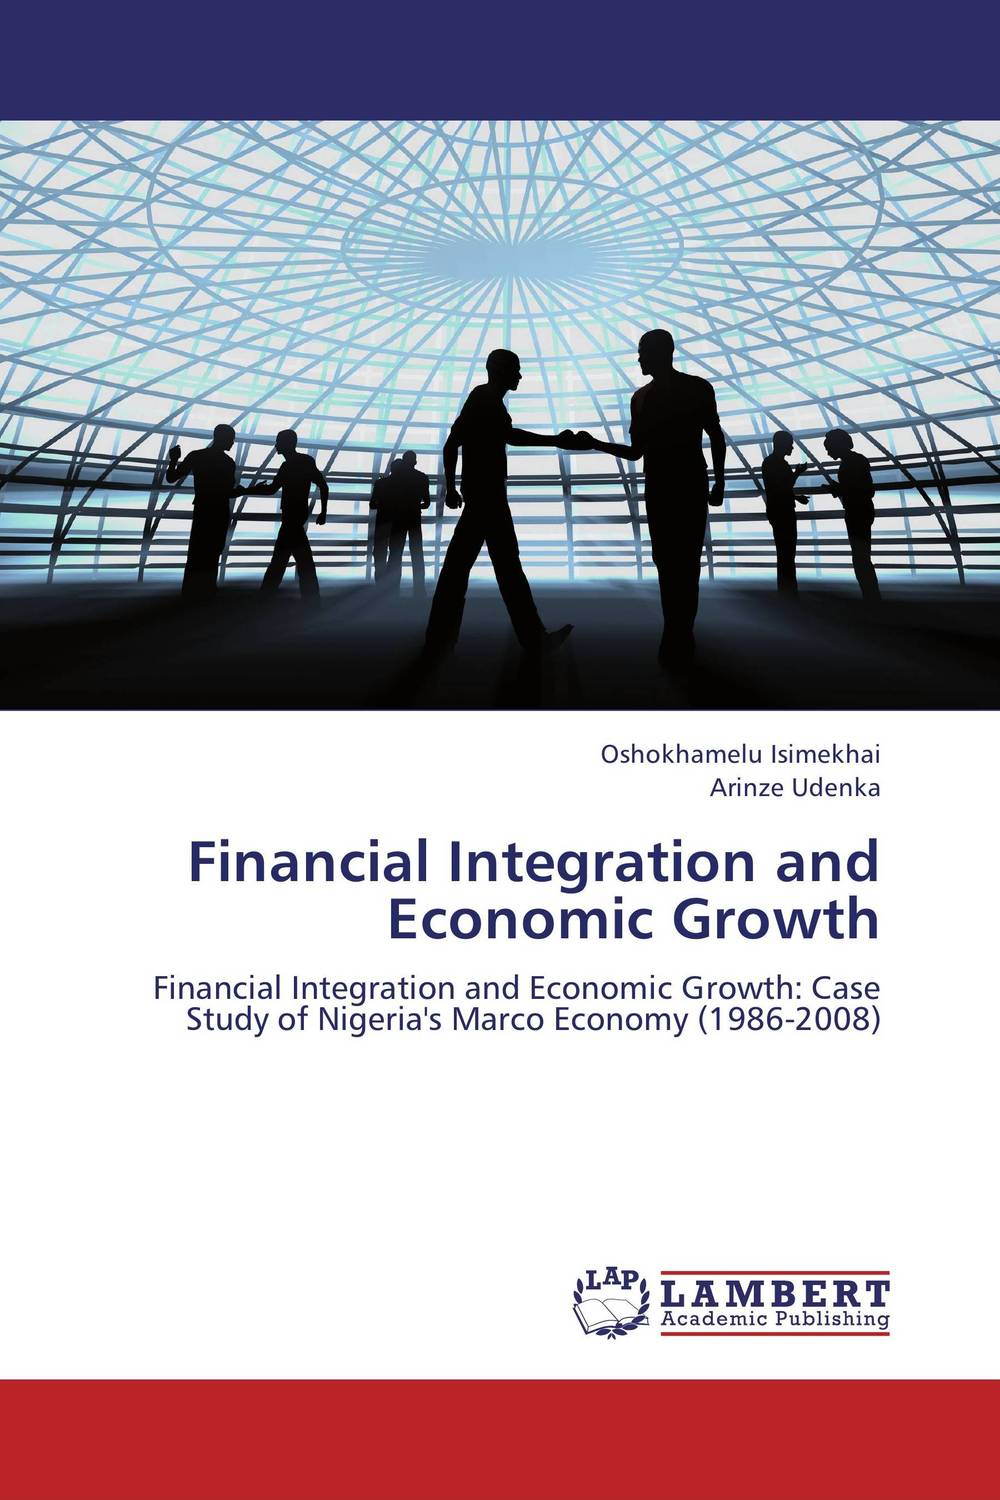 Financial Integration and Economic Growth